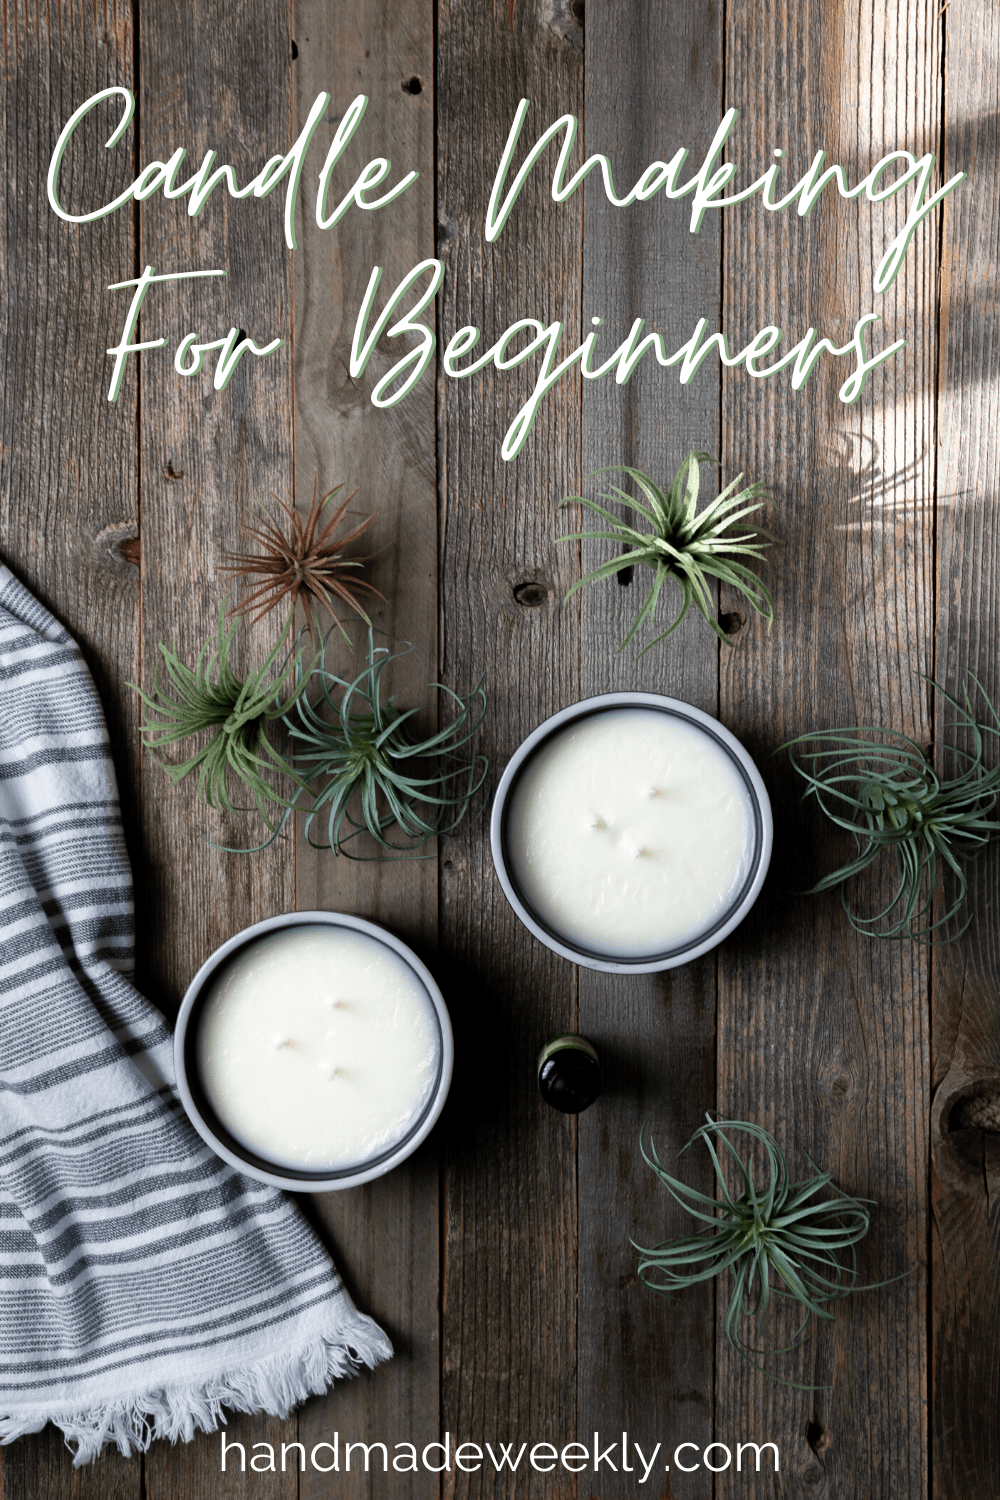 Detailed but simple tutorial on soy candle making for beginners. No experience needed to make healthy non toxic candles at home. #candlemaking #homemadecandles #candlemakingforbegineers #diycandles #handmadecandles #organiccandles #healthycandles